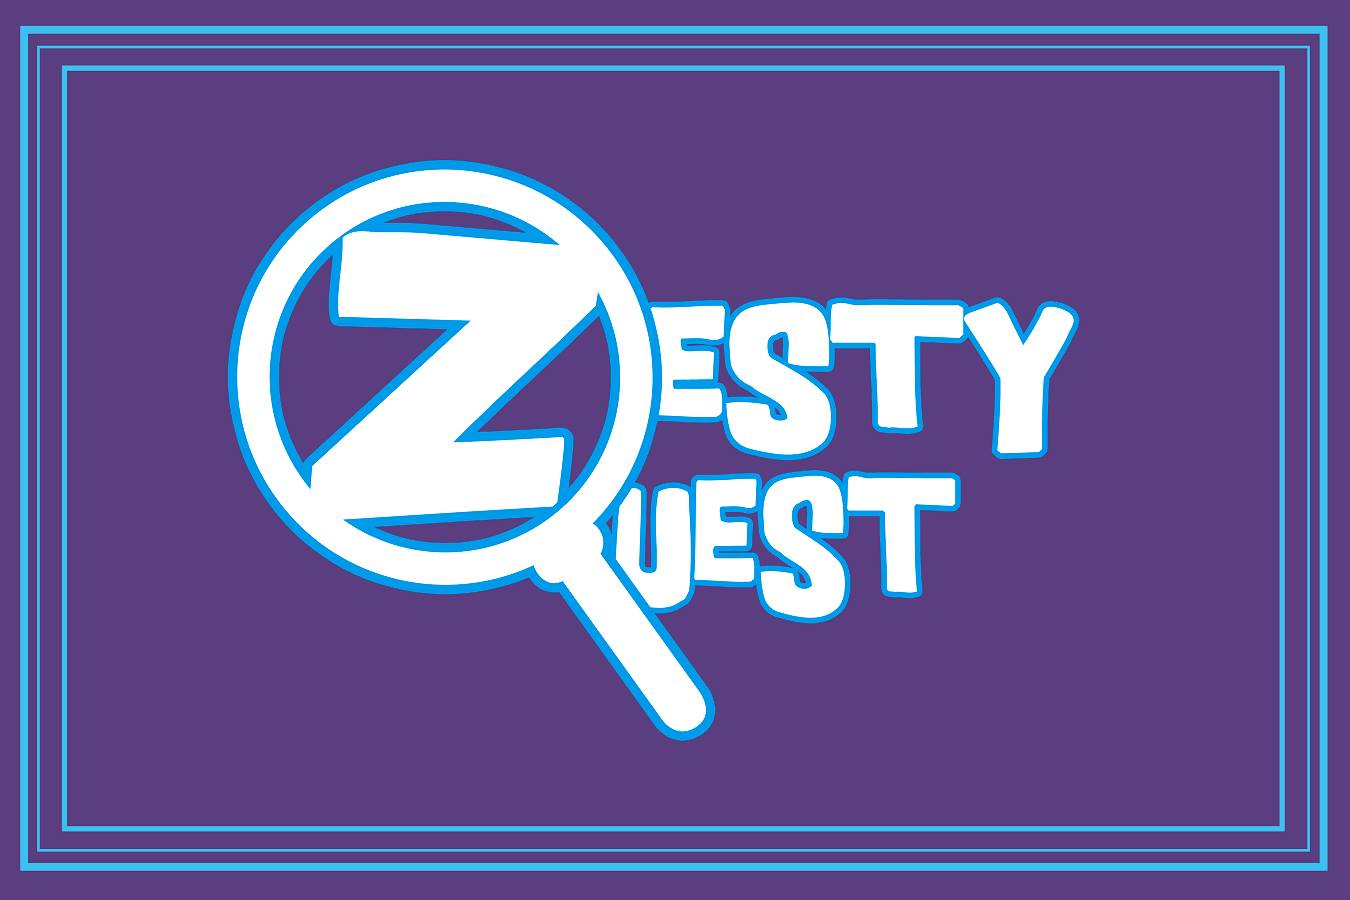 Zesty Quest - For unique and beautiful jewelry, accessories, paintings, and prints, look no further than ZestyQuest! Add a bit of reverie to your life today!